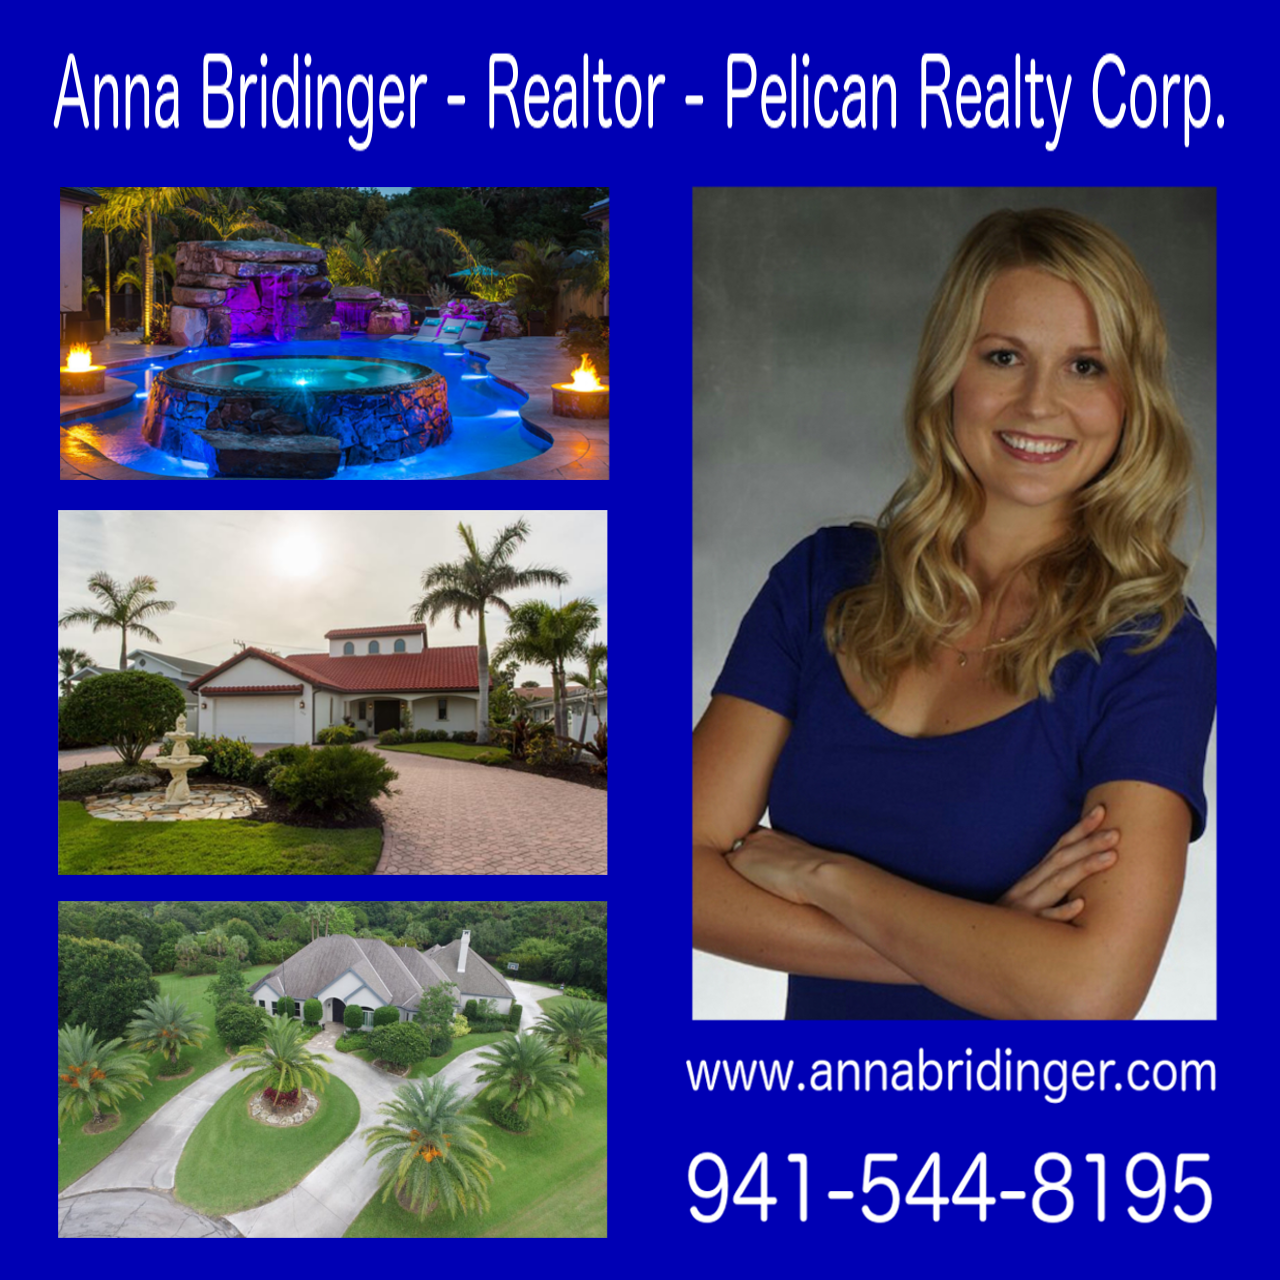 Anna Bridinger – Realtor at Pelican Realty Corp. 2504 Tamiami Trl. N., Nokomis, Florida 34275 Motivated and creative real estate agent, working at Sarasota/Manatee/Charlotte County, Floryda, USA. Thinking about selling/buying/leasing real estate property at Sarasota/Manatee/Charlotte County? Don't wait! Call/text/email me today and I will help you sell or buy real estate property. I will make sure that the deal closes fast and without any problems. Zmotywowana i pomysłowa agentka nieruchomości, działająca na terenie Sarasota/Manatee/Charlotte County, Floryda, USA. Jeśli myślisz o zakupie/wynajmie/sprzedazy nieruchomosci w Sarasota/Manatee/Charlotte County, nie zwlekaj! Zadzwoń do mnie juz dziś, a ja pomogę Ci sprzedać lub kupić nieruchomość. Dopilnuję wlaściwego i bezproblemowego przebiegu transakcji. Website: annabridinger.com Facebook: www.facebook.com/annabridingerfl email: annabridinger@yahoo.com (941) 544-8195 Anna Bridinger – Realtor at Pelican Realty Corp. 2504 Tamiami Trl. N., Nokomis, Florida 34275 Motivated and creative real estate agent, working at Sarasota/Manatee/Charlotte County, Floryda, USA. Thinking about selling/buying/leasing real estate property at Sarasota/Manatee/Charlotte County? Don't wait! Call/text/email me today and I will help you sell or buy real estate property. I will make sure that the deal closes fast and without any problems. Zmotywowana i pomysłowa agentka nieruchomości, działająca na terenie Sarasota/Manatee/Charlotte County, Floryda, USA. Jeśli myślisz o zakupie/wynajmie/sprzedazy nieruchomosci w Sarasota/Manatee/Charlotte County, nie zwlekaj! Zadzwoń do mnie juz dziś, a ja pomogę Ci sprzedać lub kupić nieruchomość. Dopilnuję wlaściwego i bezproblemowego przebiegu transakcji. Website: annabridinger.com Facebook: www.facebook.com/annabridingerfl email: annabridinger@yahoo.com (941) 544-8195 Anna Bridinger – Realtor at Pelican Realty Corp. 2504 Tamiami Trl. N., Nokomis, Florida 34275 Motivated and creative real estate agent, working at Sarasota/Manatee/Charlotte County, Floryda, USA. Thinking about selling/buying/leasing real estate property at Sarasota/Manatee/Charlotte County? Don't wait! Call/text/email me today and I will help you sell or buy real estate property. I will make sure that the deal closes fast and without any problems. Zmotywowana i pomysłowa agentka nieruchomości, działająca na terenie Sarasota/Manatee/Charlotte County, Floryda, USA. Jeśli myślisz o zakupie/wynajmie/sprzedazy nieruchomosci w Sarasota/Manatee/Charlotte County, nie zwlekaj! Zadzwoń do mnie juz dziś, a ja pomogę Ci sprzedać lub kupić nieruchomość. Dopilnuję wlaściwego i bezproblemowego przebiegu transakcji. Website: annabridinger.com Facebook: www.facebook.com/annabridingerfl email: annabridinger@yahoo.com (941) 544-8195